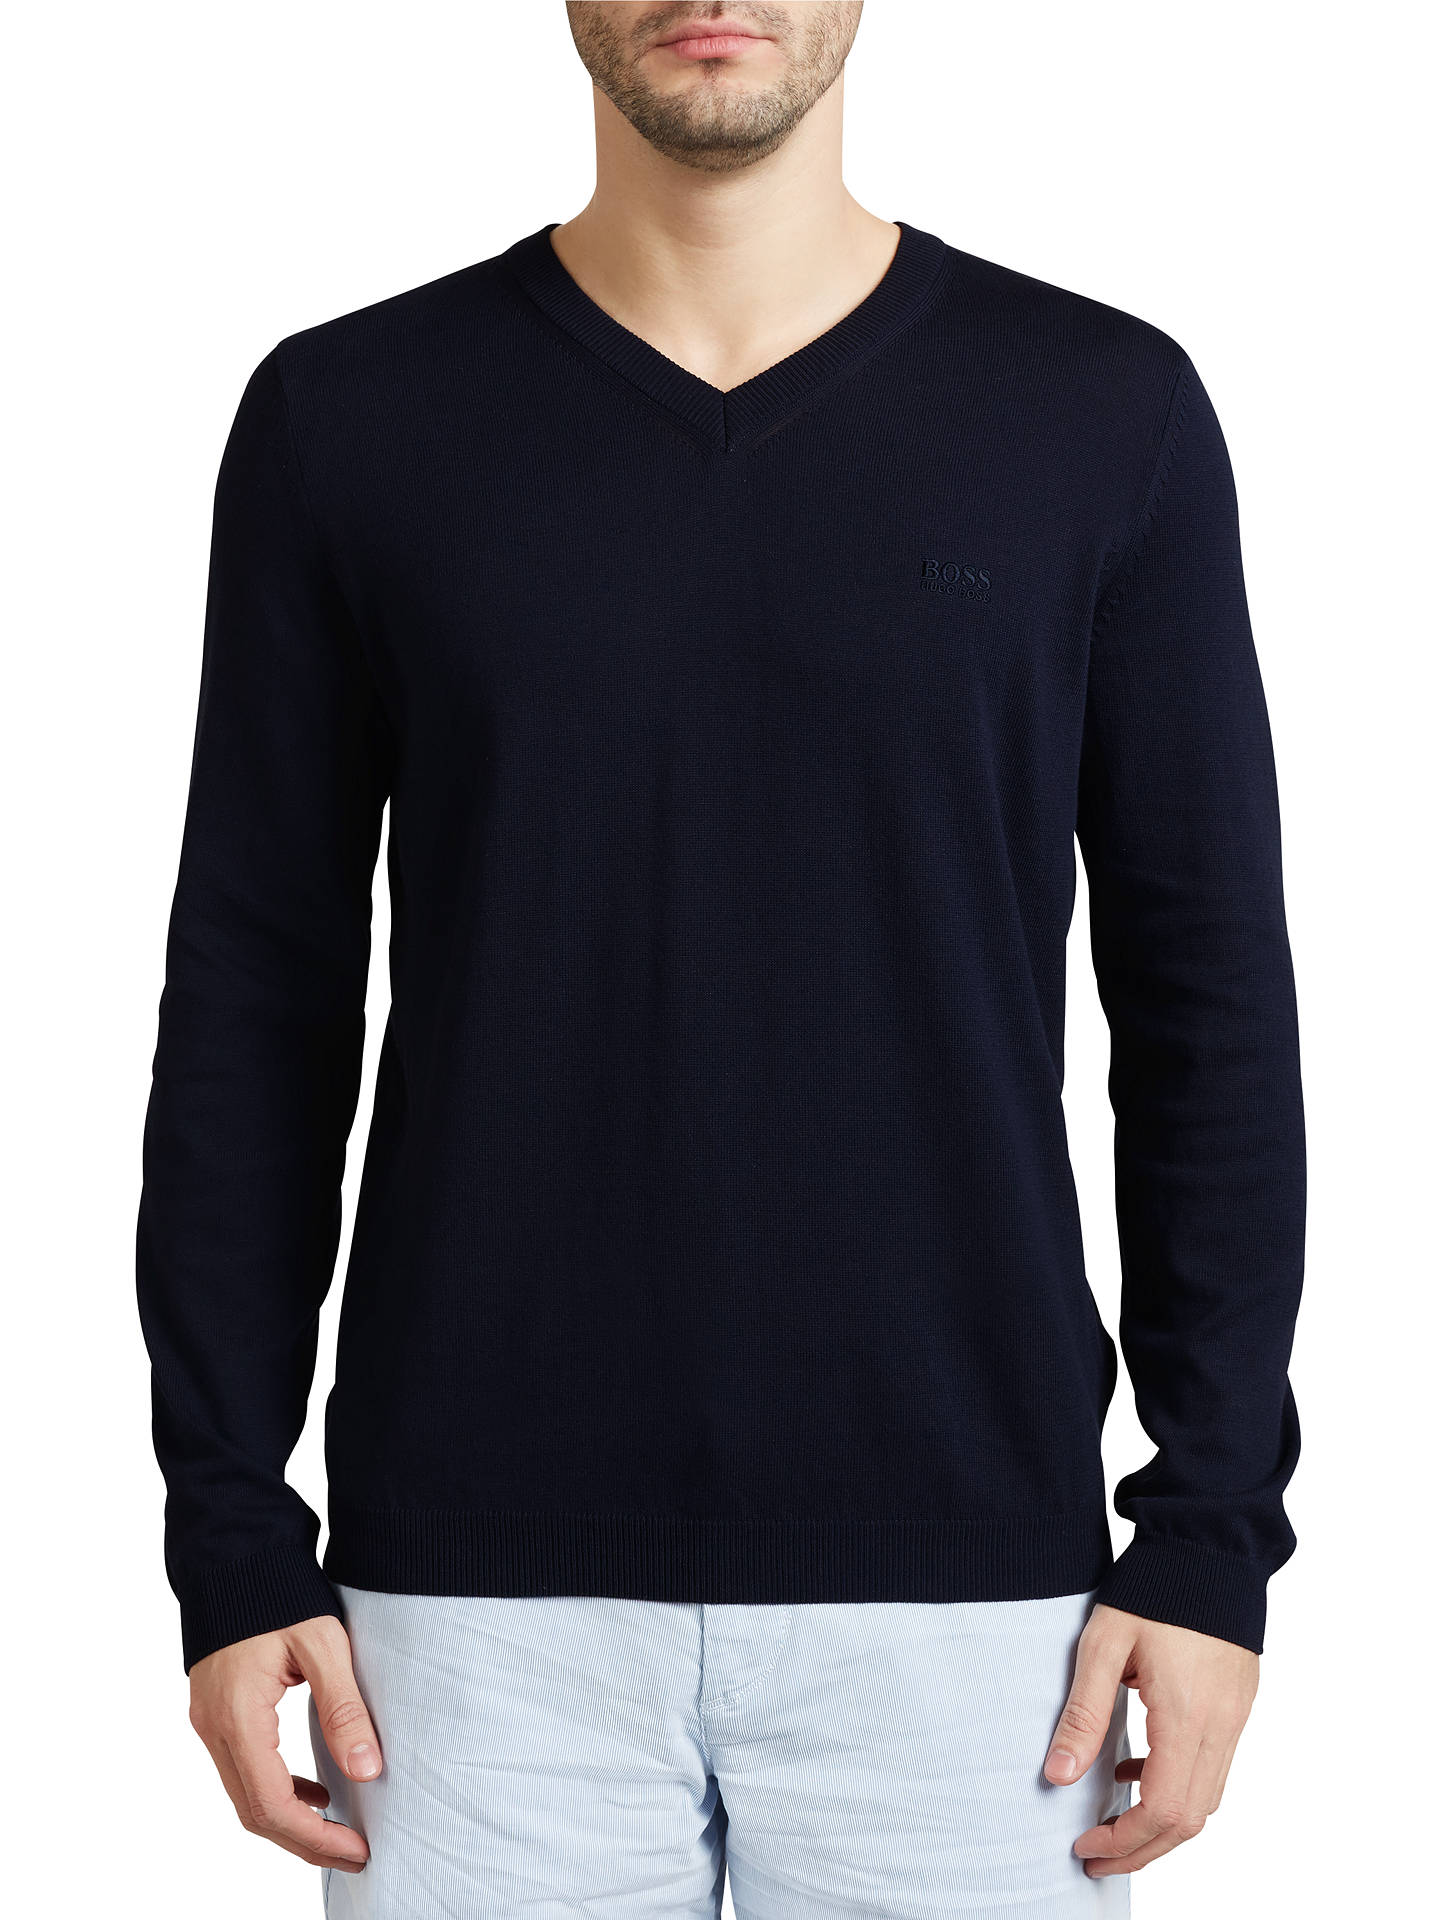 36788f23a Buy BOSS Green C-Carlton V-Neck Jumper, Navy, S Online at ...